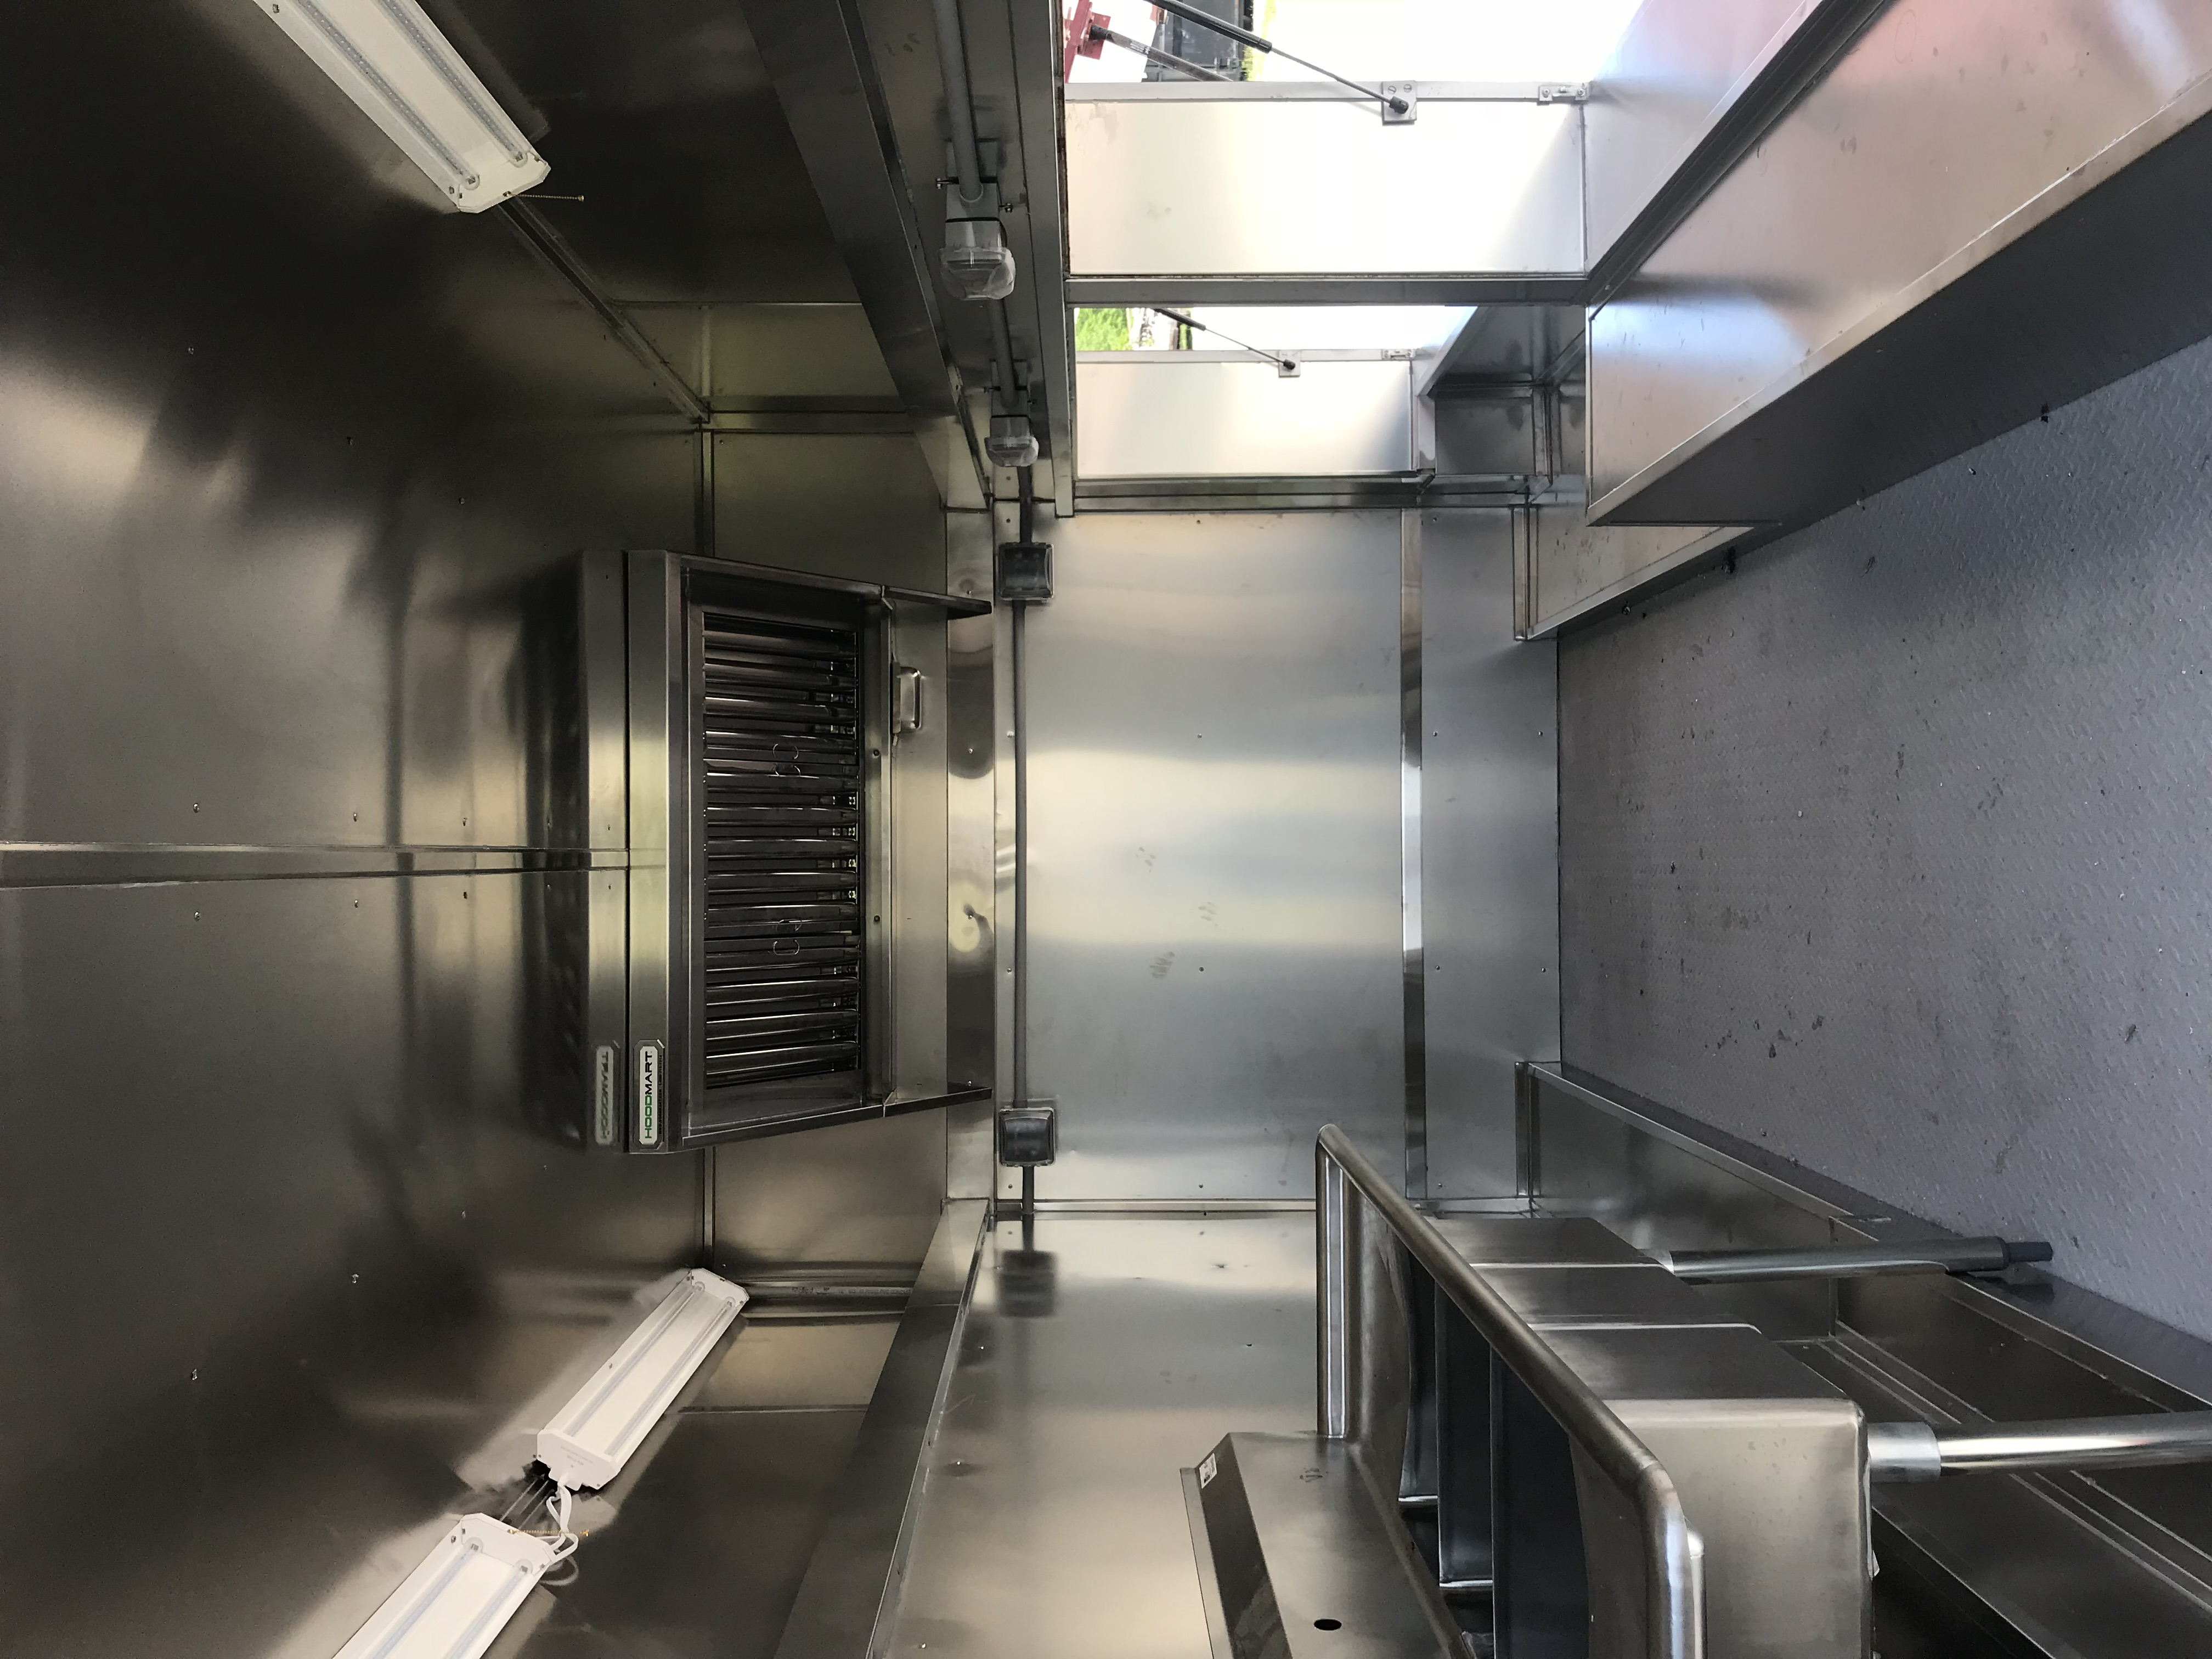 Inside of the Food Truck - Firetruck